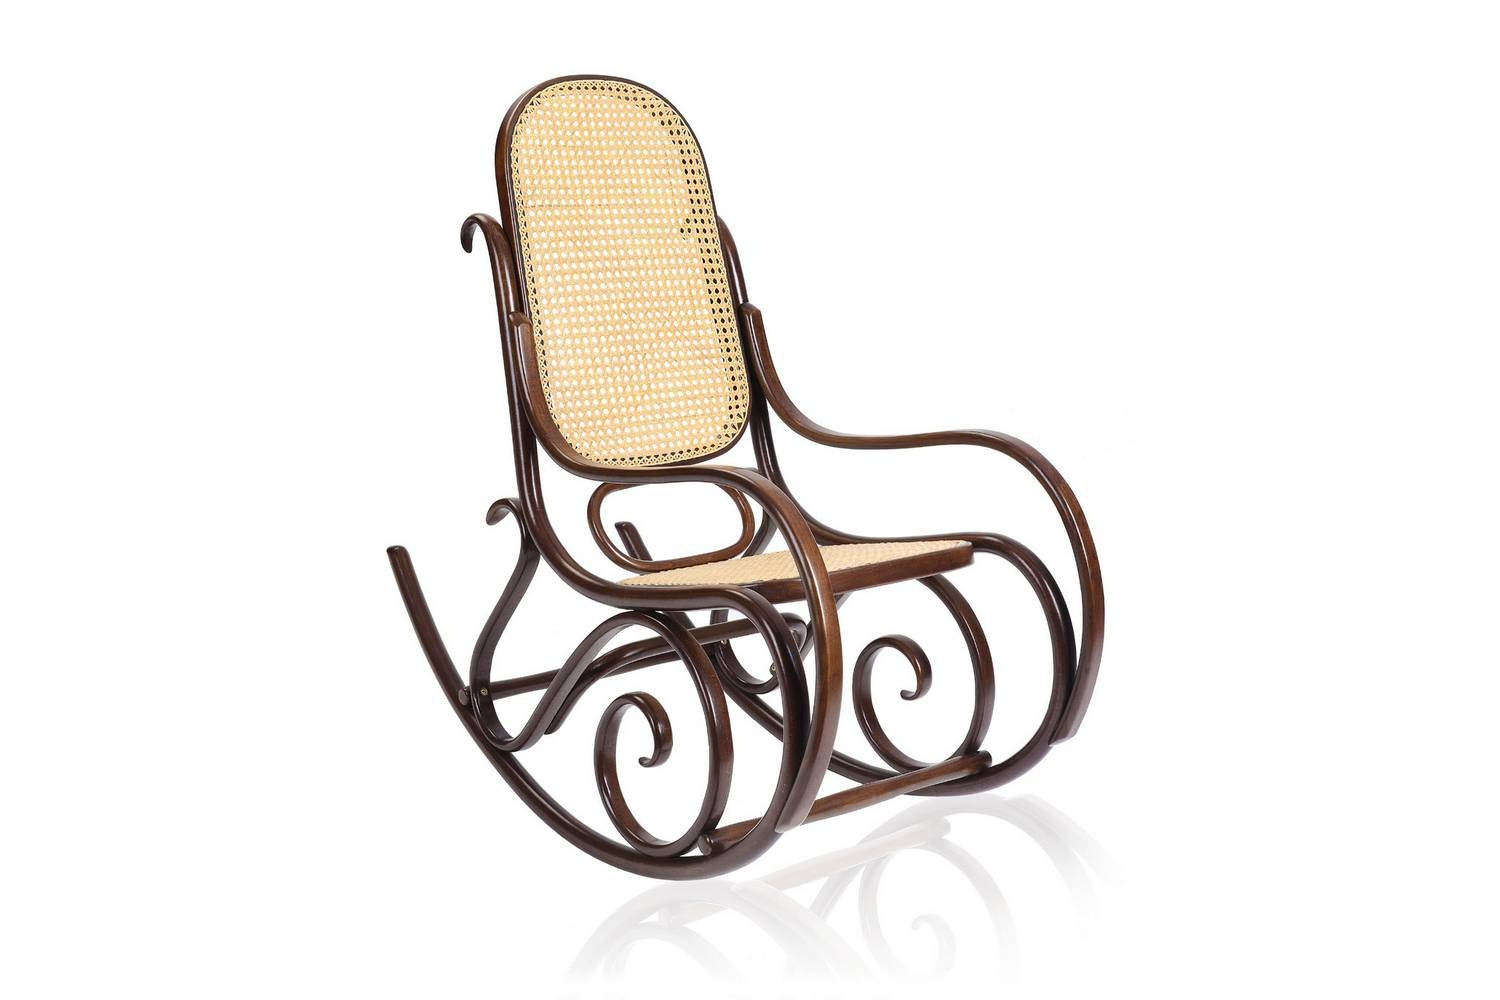 Schaukelstuhl Rocking Chair by Gebruder Thonet Vienna for Wiener GTV Design